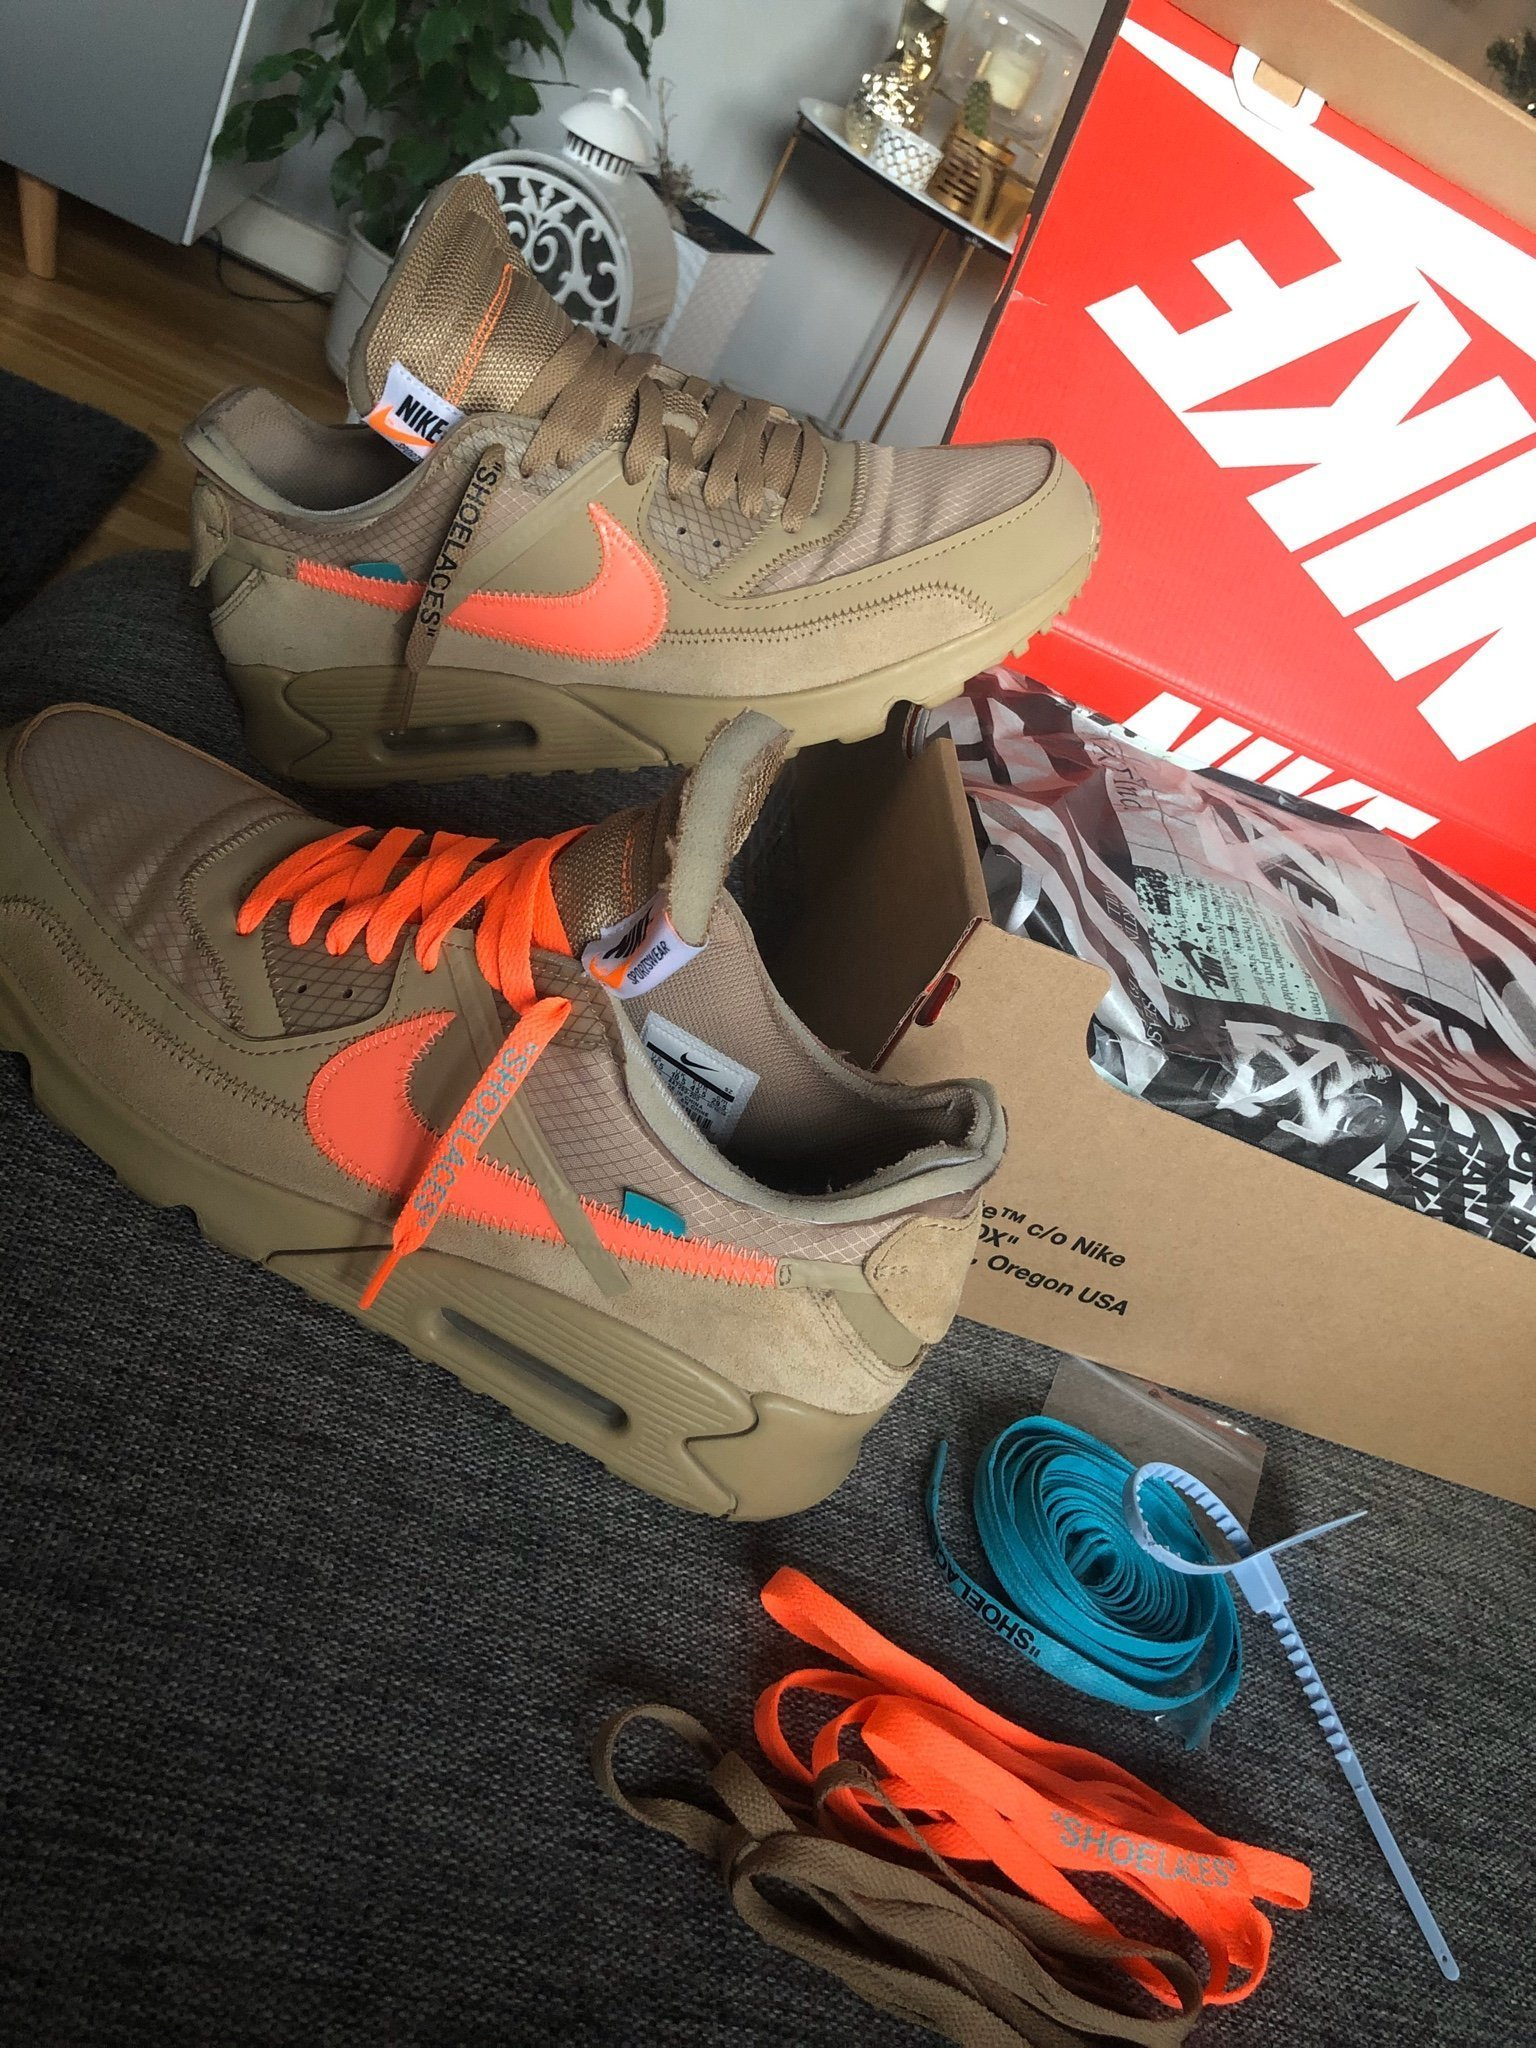 Nike x Off White Air Max 90 Virgil Abloh Storlek 45,5